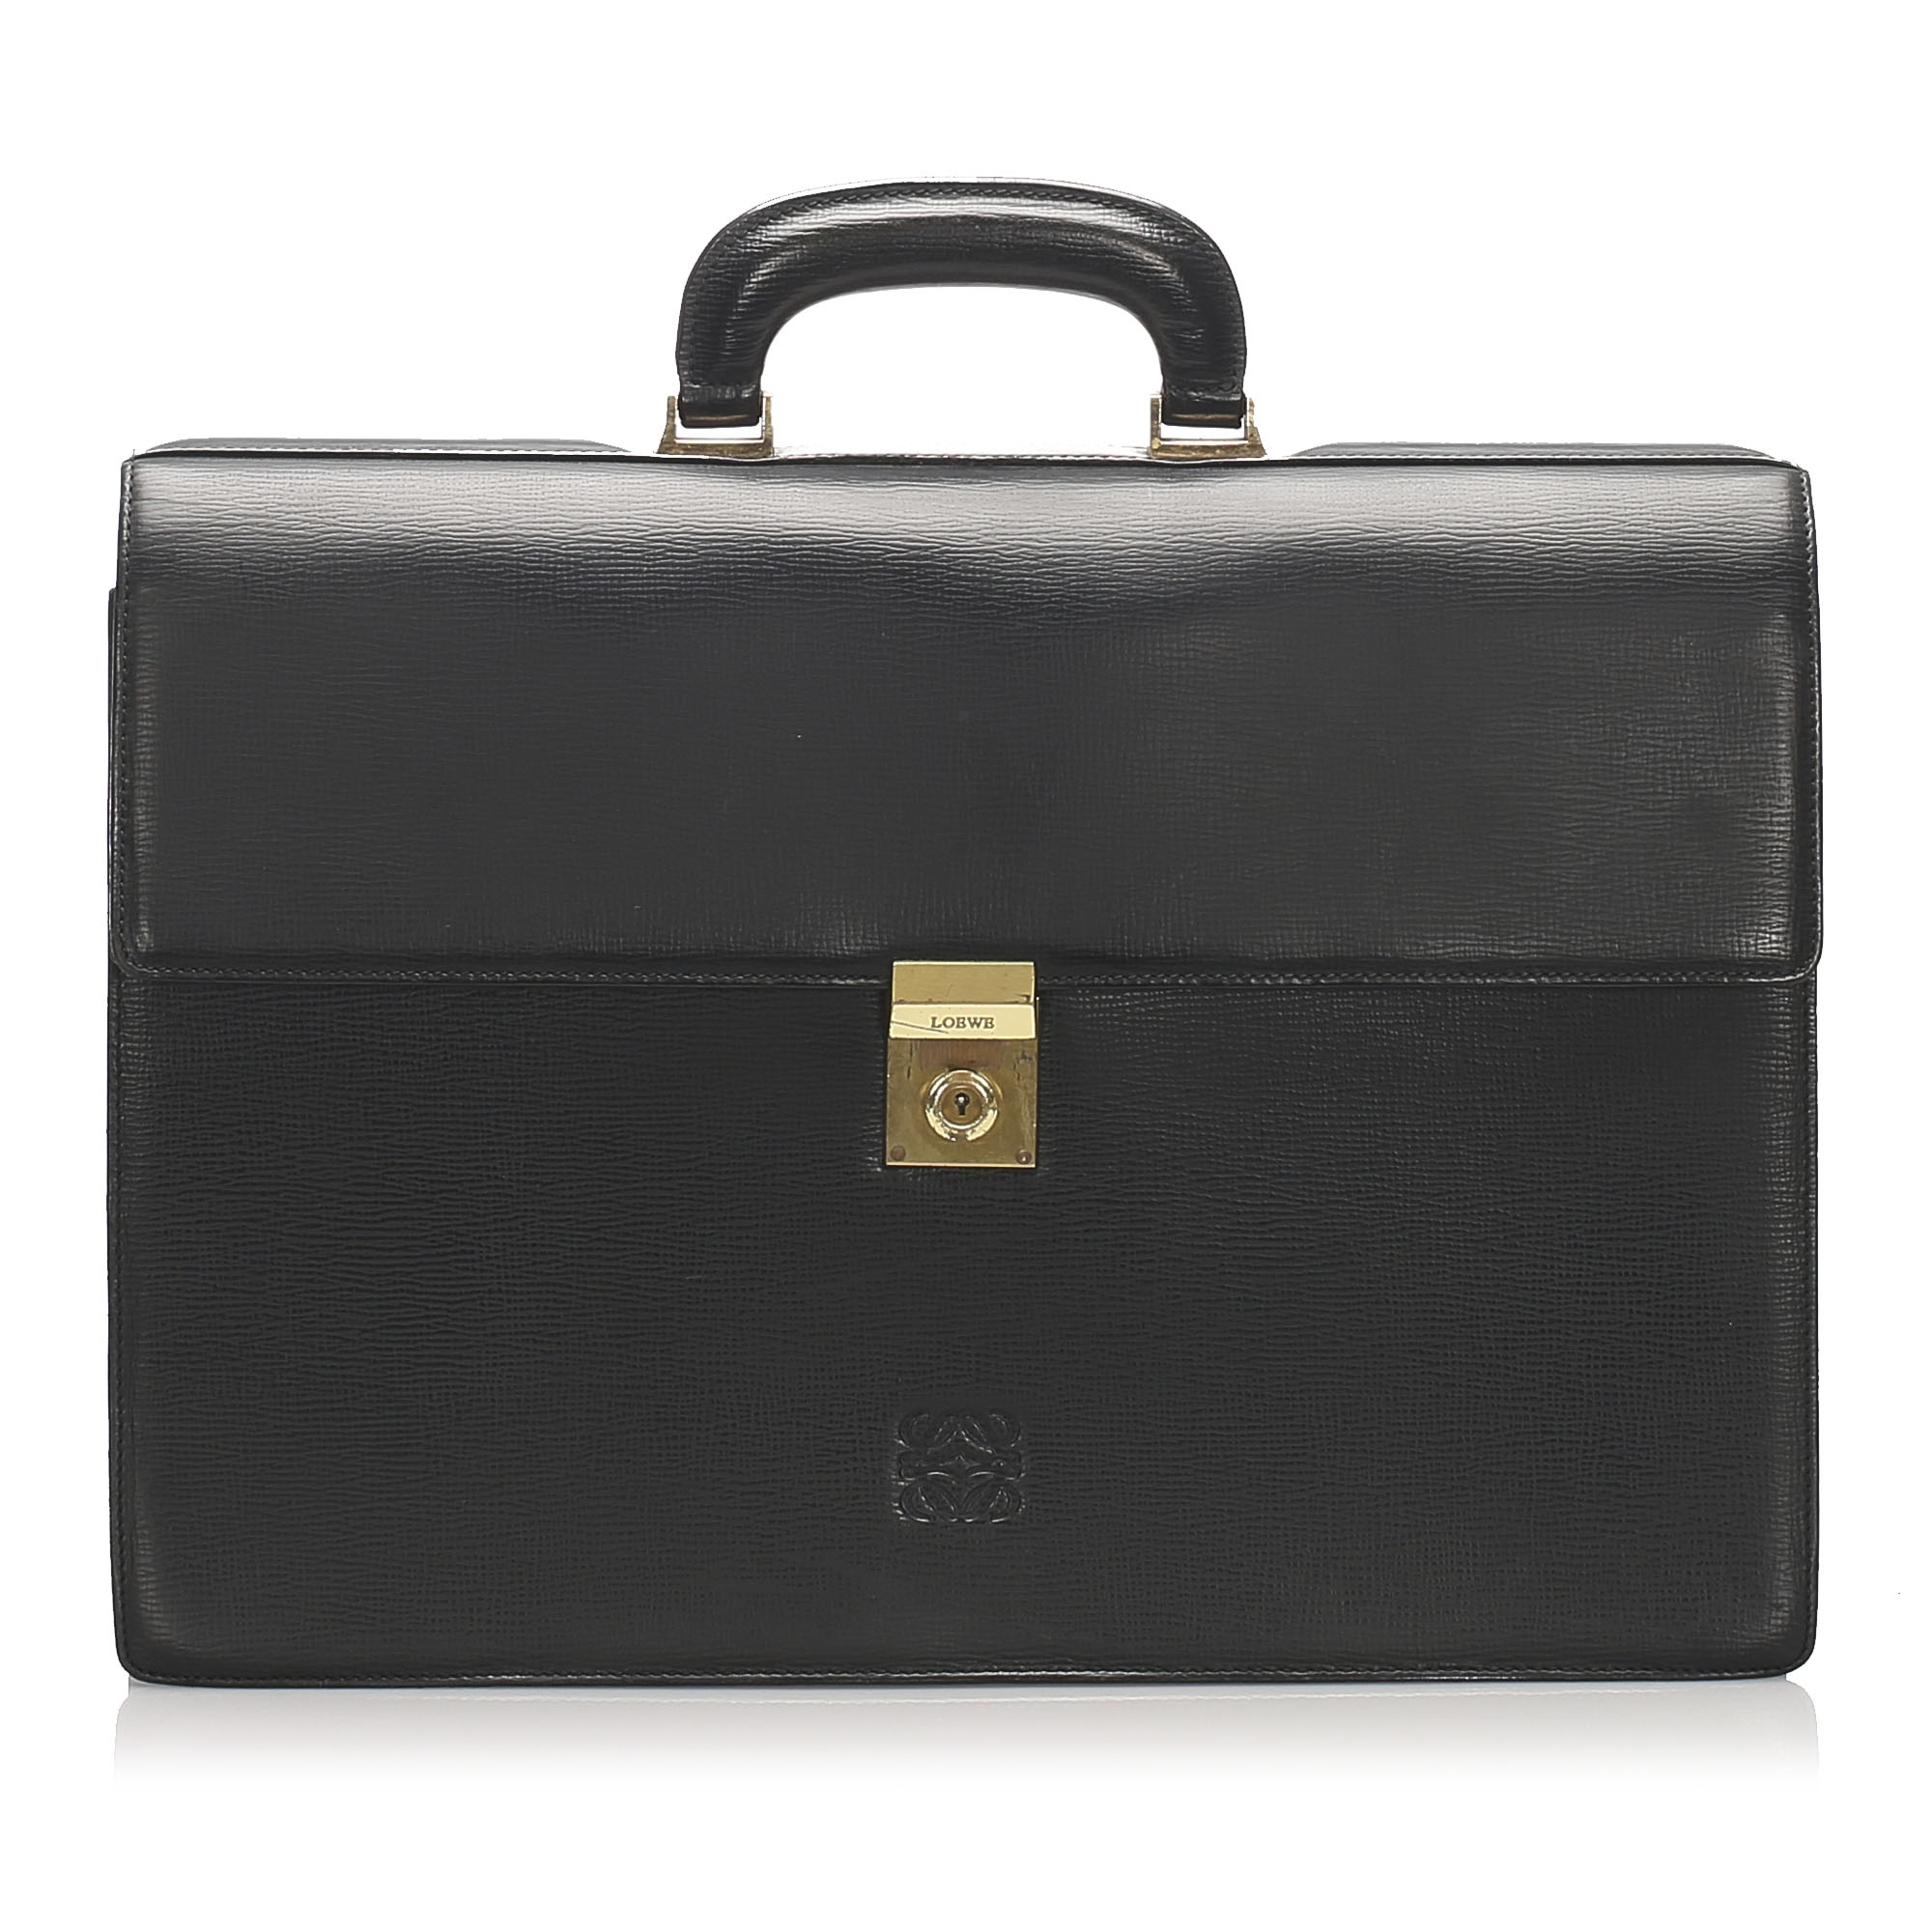 Loewe Black Leather Briefcase